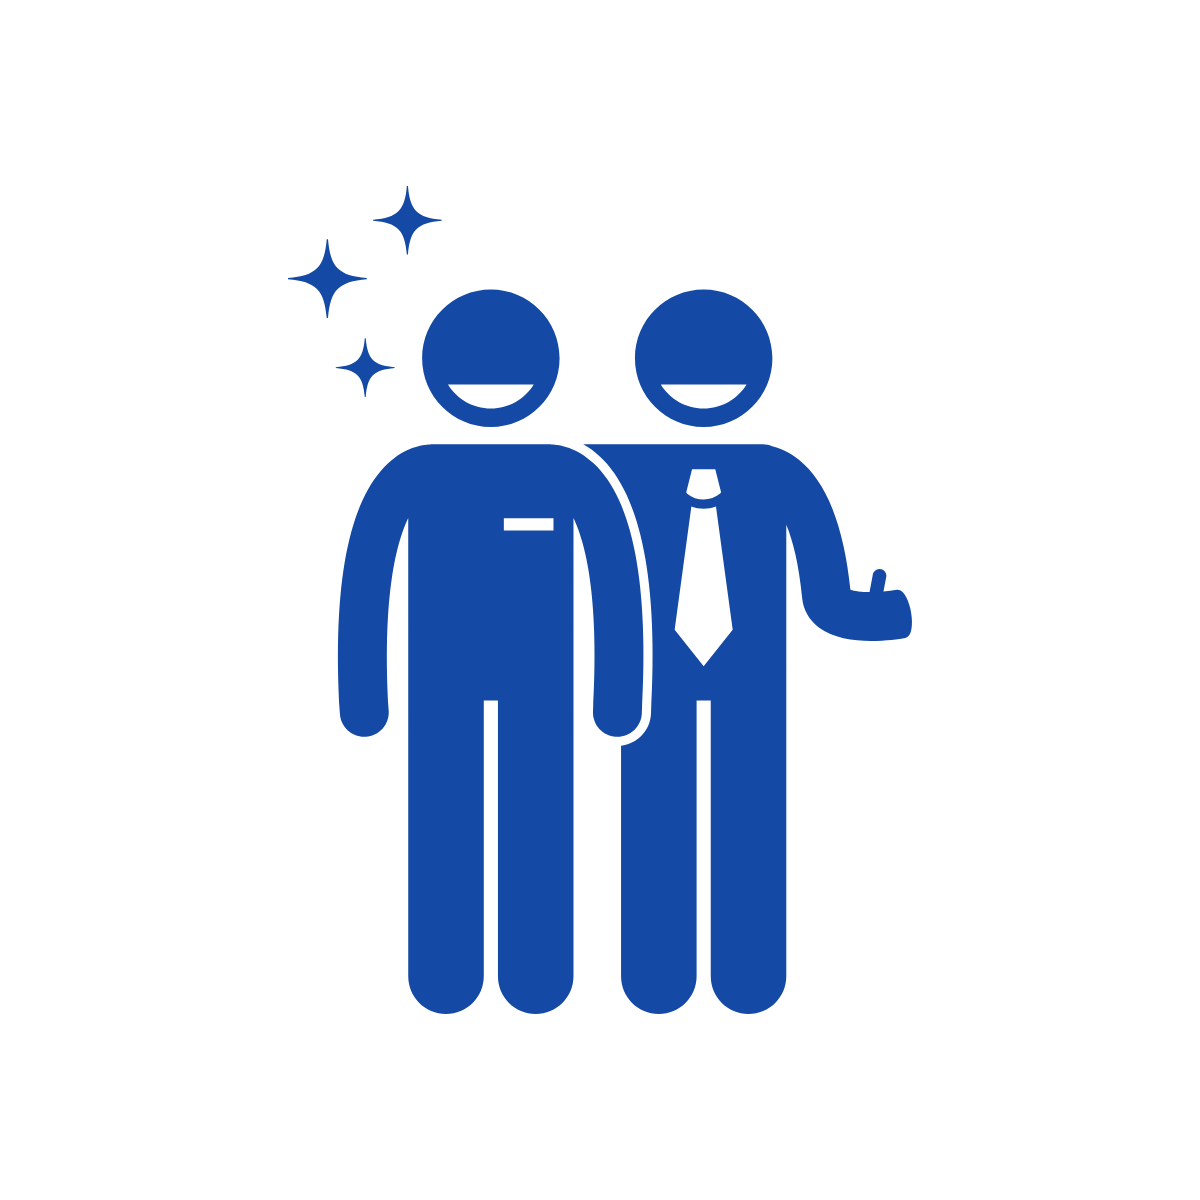 graphic of two people smiling, one with a tie giving a thumbs up